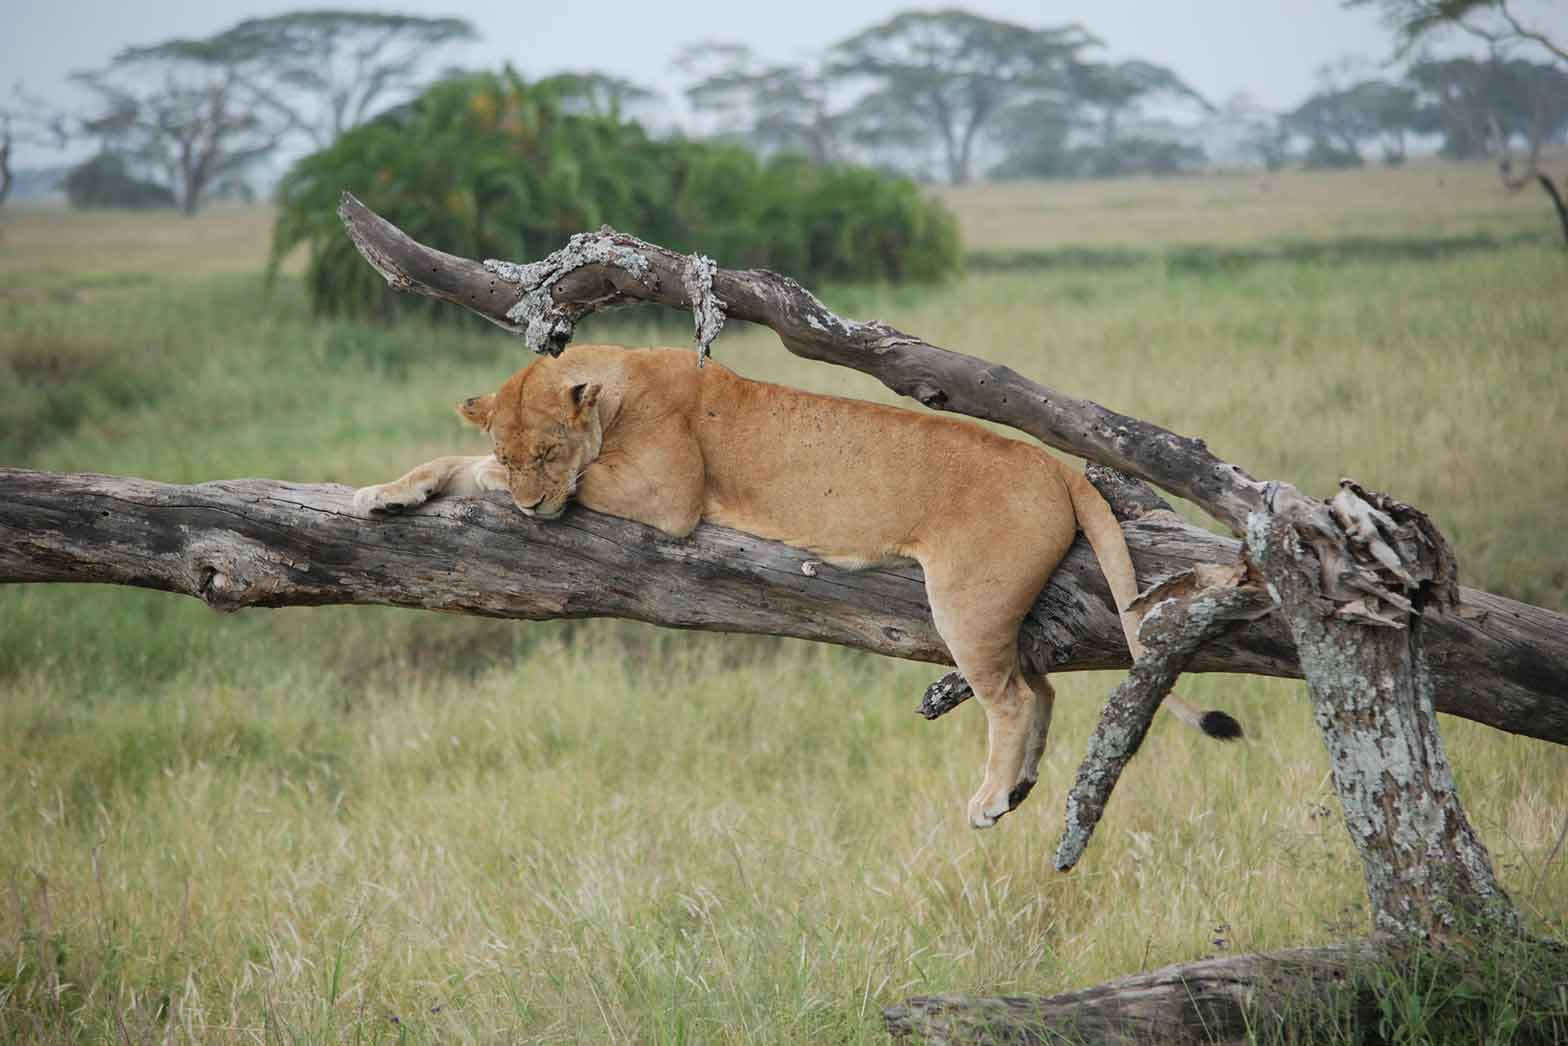 Treed Lion – The Serengeti